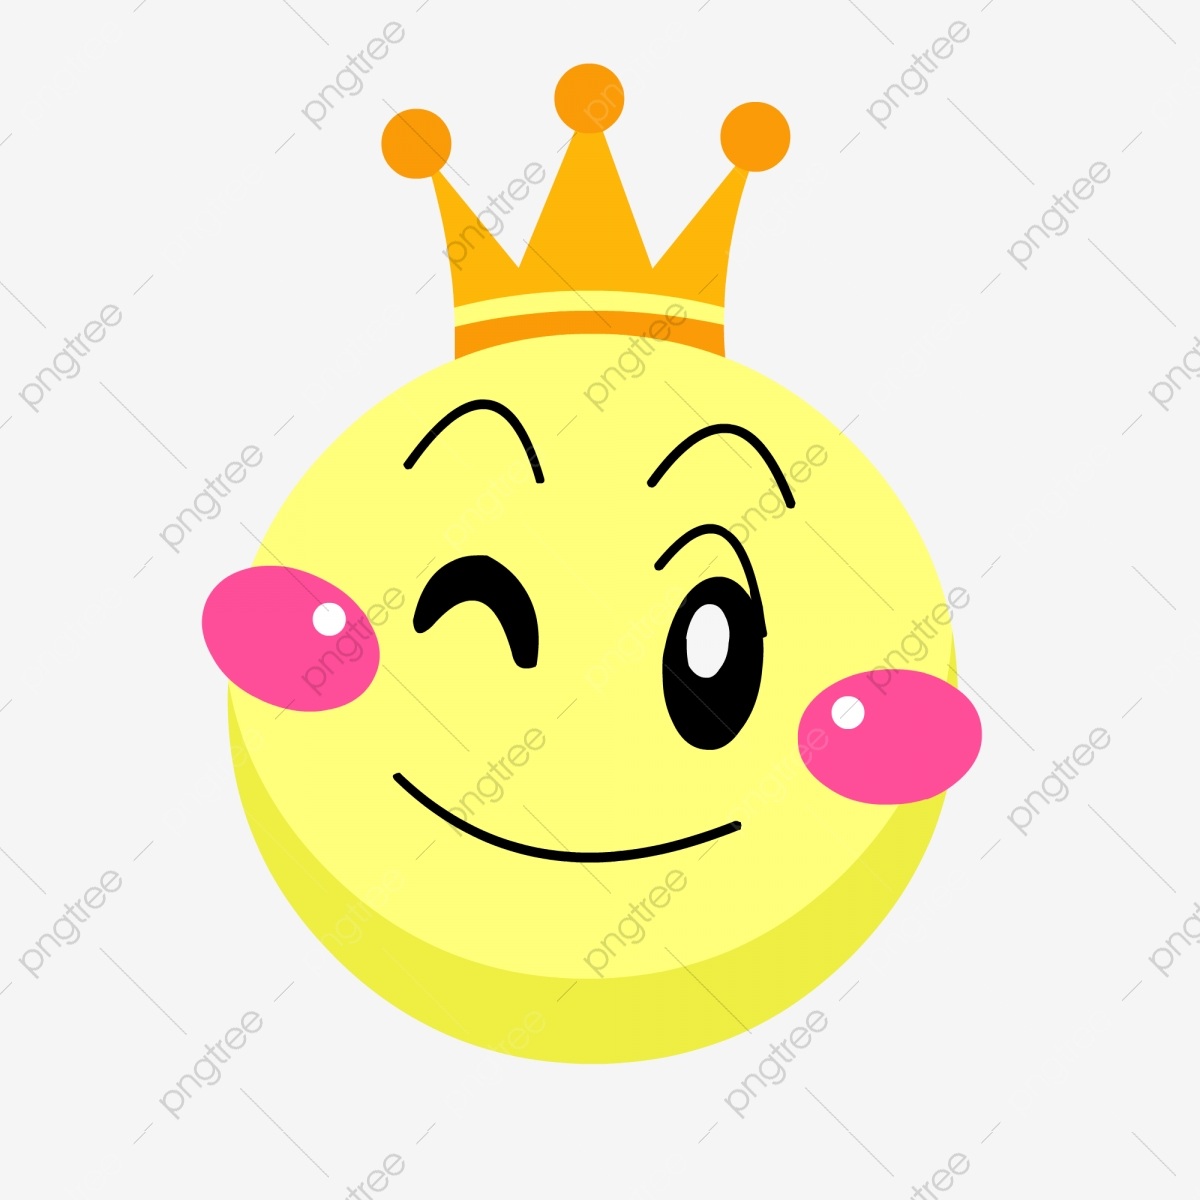 Hand Drawn Yellow Round With Crown Cute Round Smiley Face Crown Cartoon Crown Hand Drawn Expressions Png And Vector With Transparent Background For Free Download It's high quality and easy to use. https pngtree com freepng hand drawn yellow round with crown cute round smiley face 4715551 html